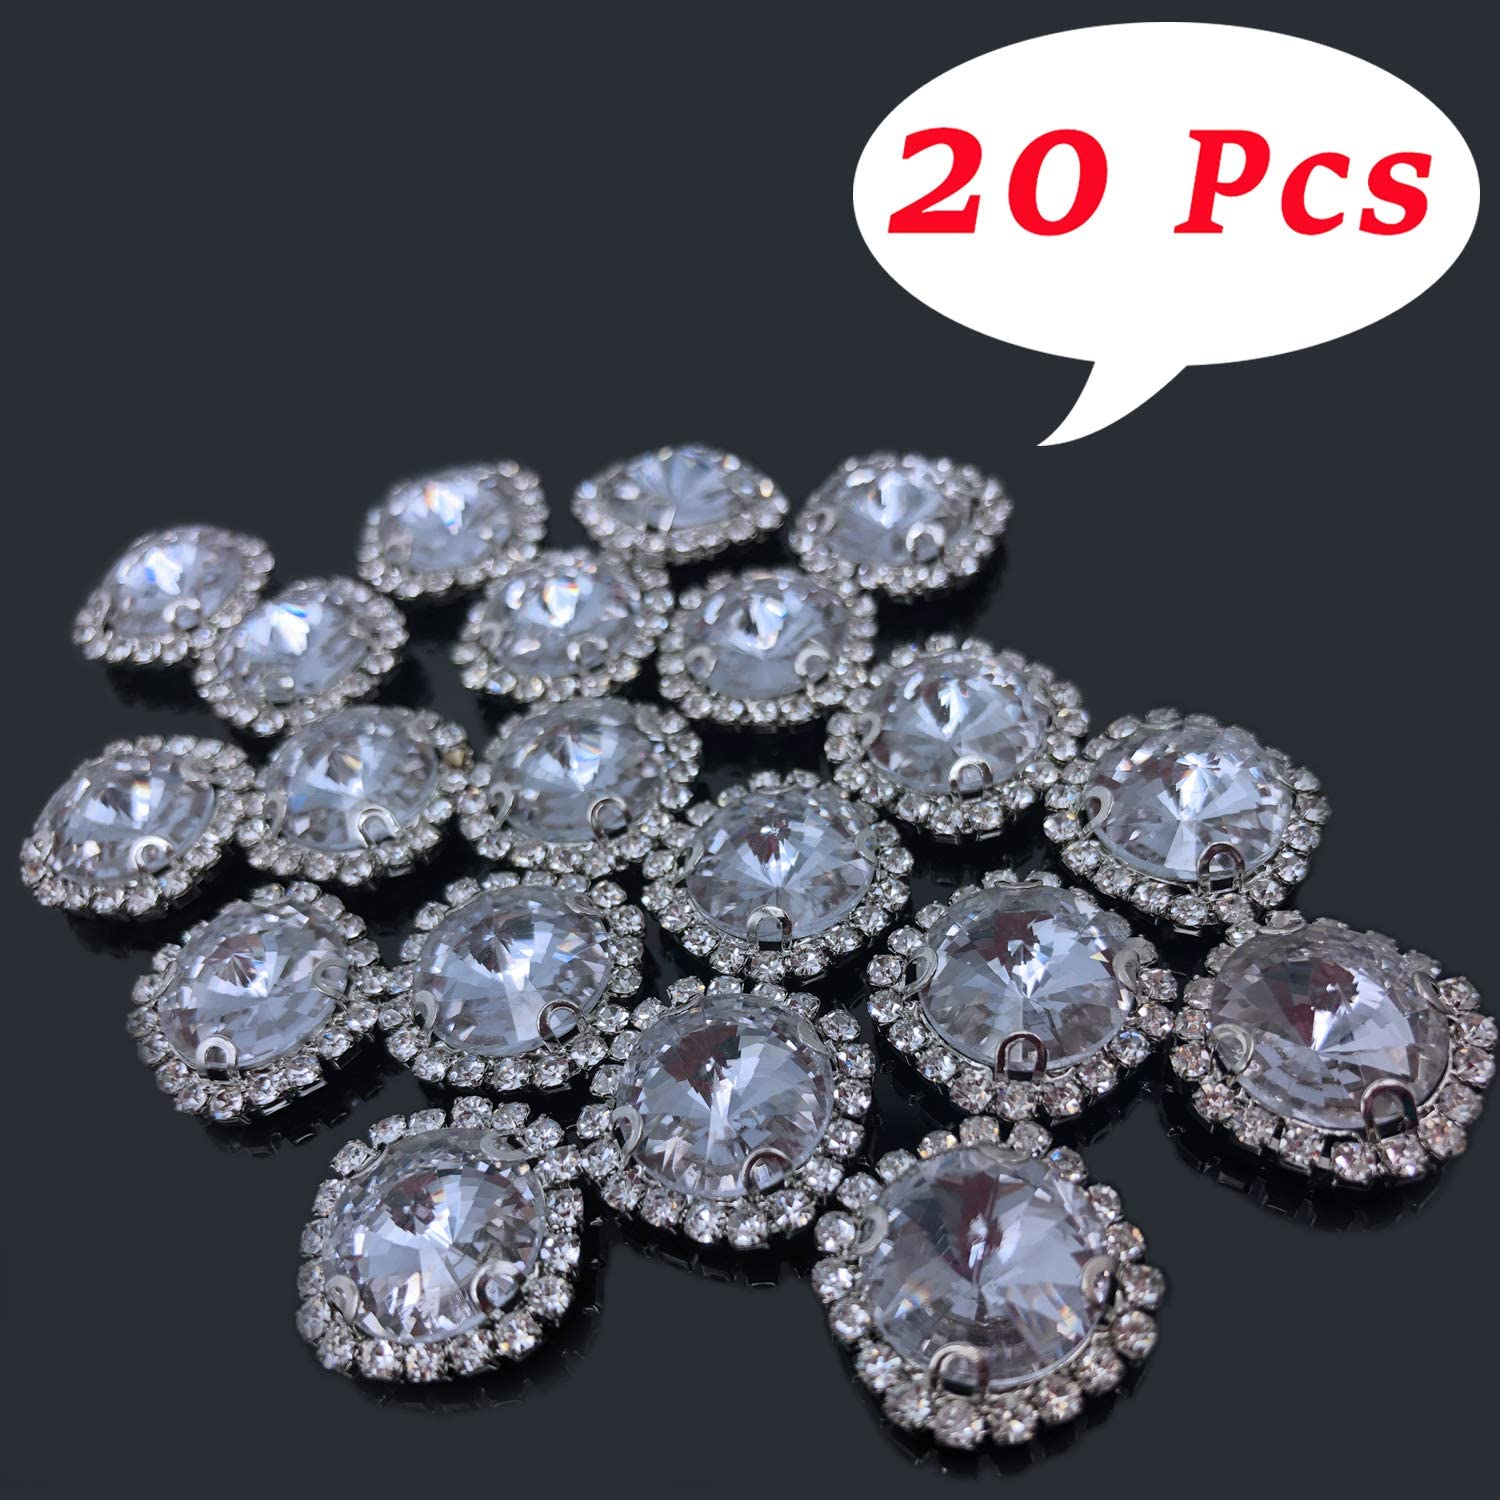 20pcs Crystal Rhinestone Button Flat Back Wedding Dress Hair Accessory DIY